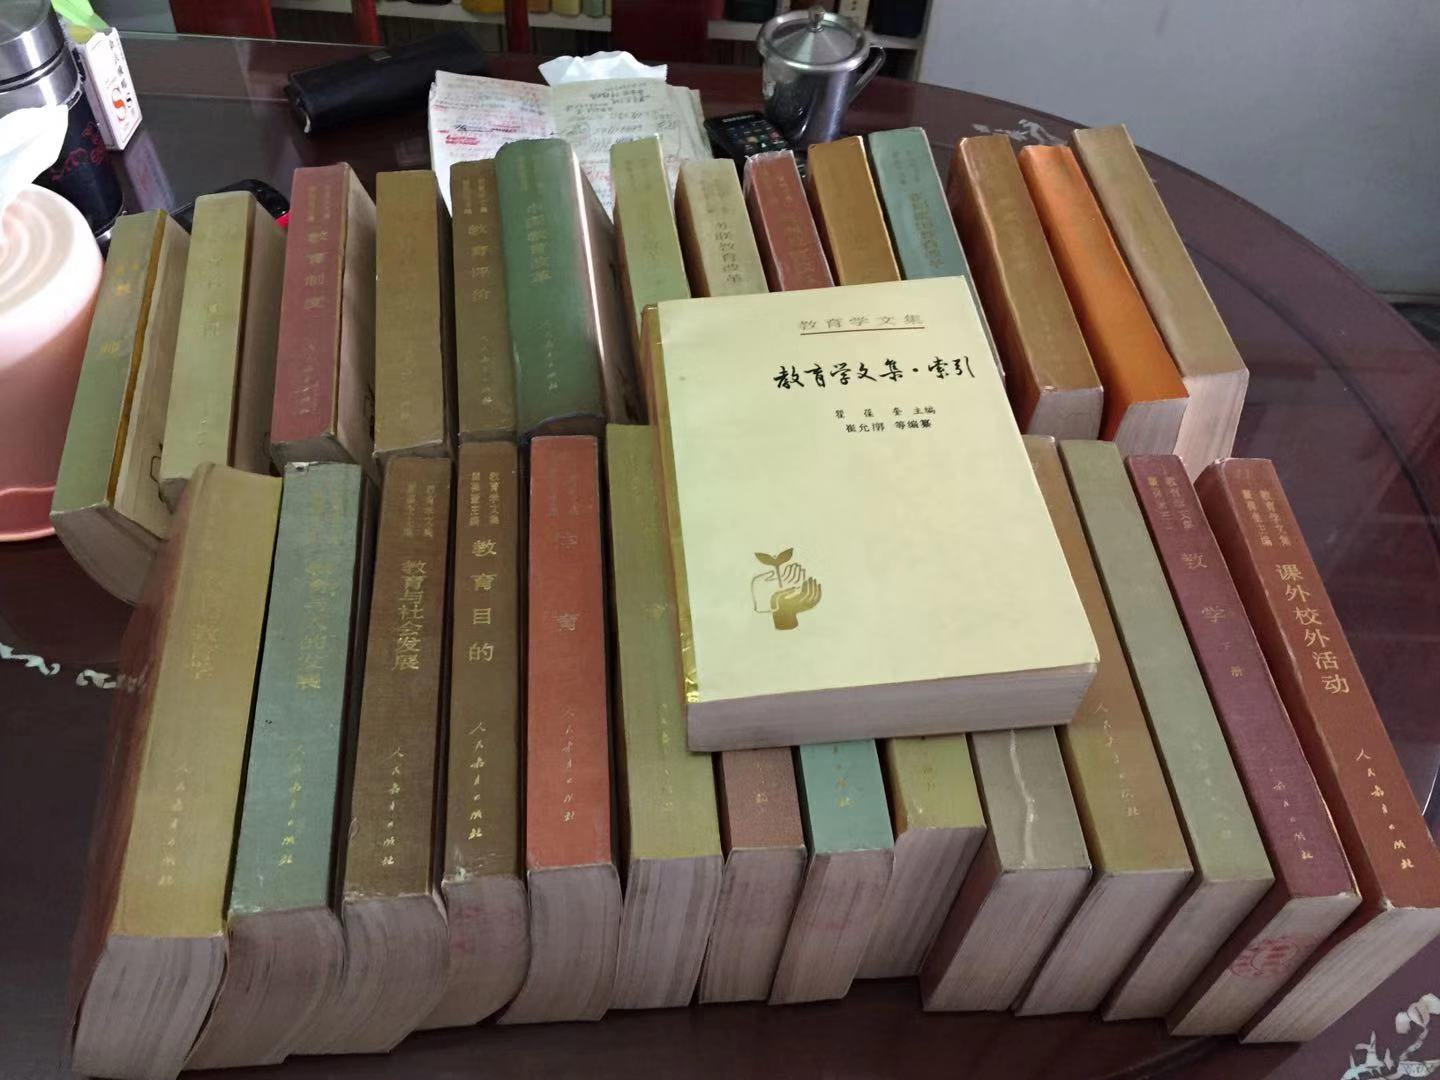 Dr Lau donated more than 20 books on educational research and the history of education to the Faculty of Education